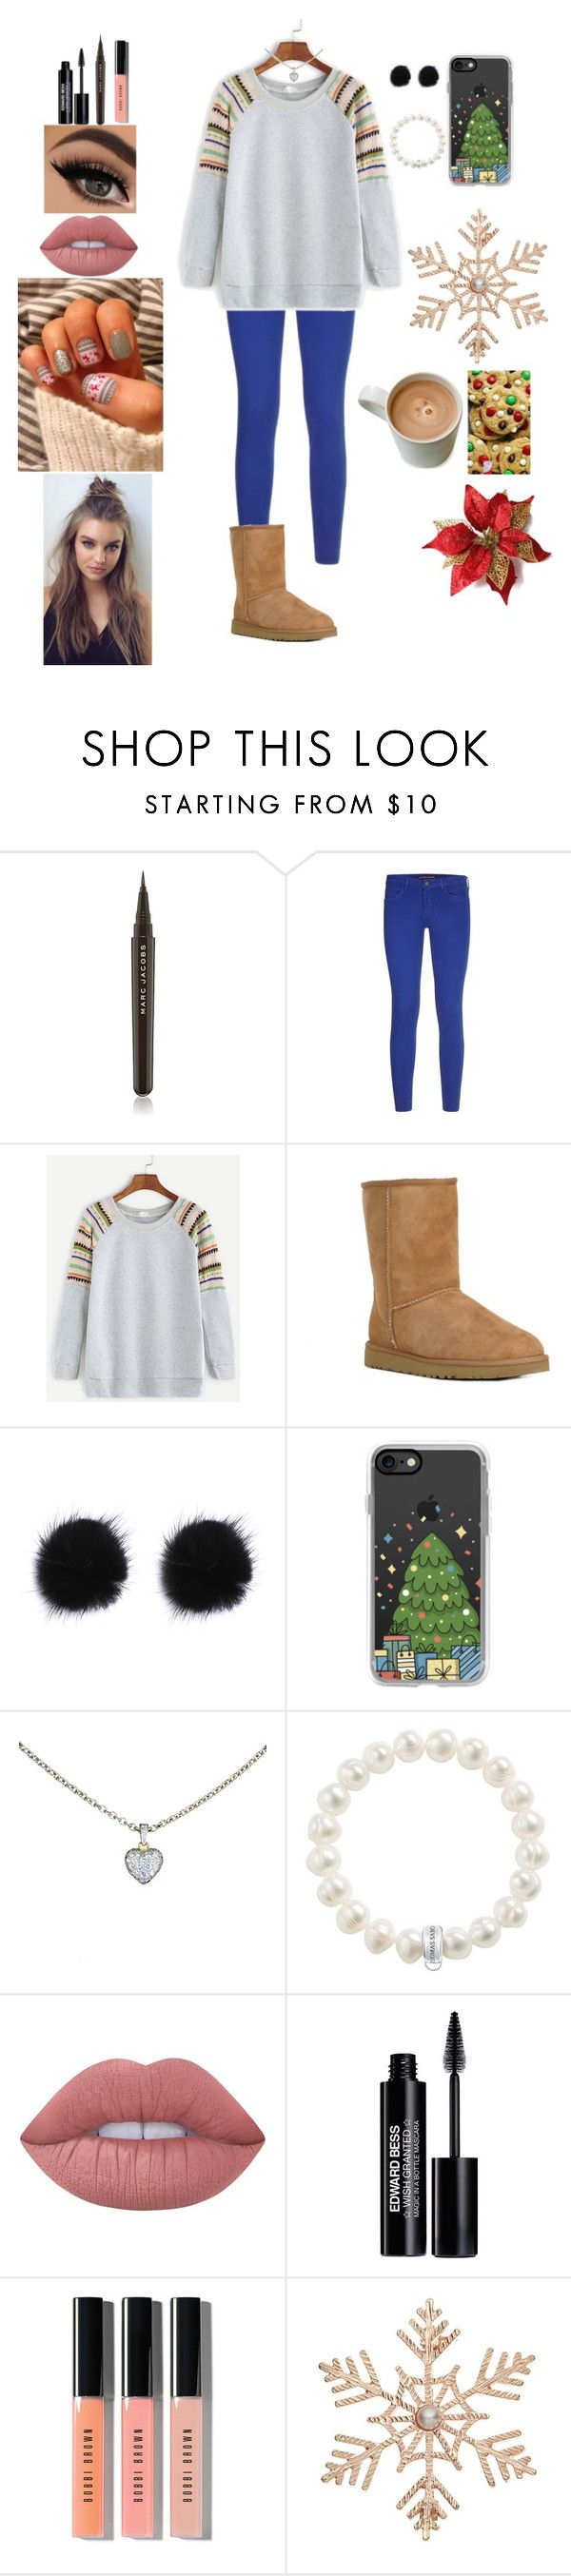 """Untitled #566"" by qwert123456 ❤ liked on Polyvore featuring Marc Jacobs, Comptoir Des Cotonniers, UGG Australia, Casetify, Cartier, Thomas Sabo, Lime Crime, Edward Bess, Bobbi Brown Cosmetics and John Lewis"